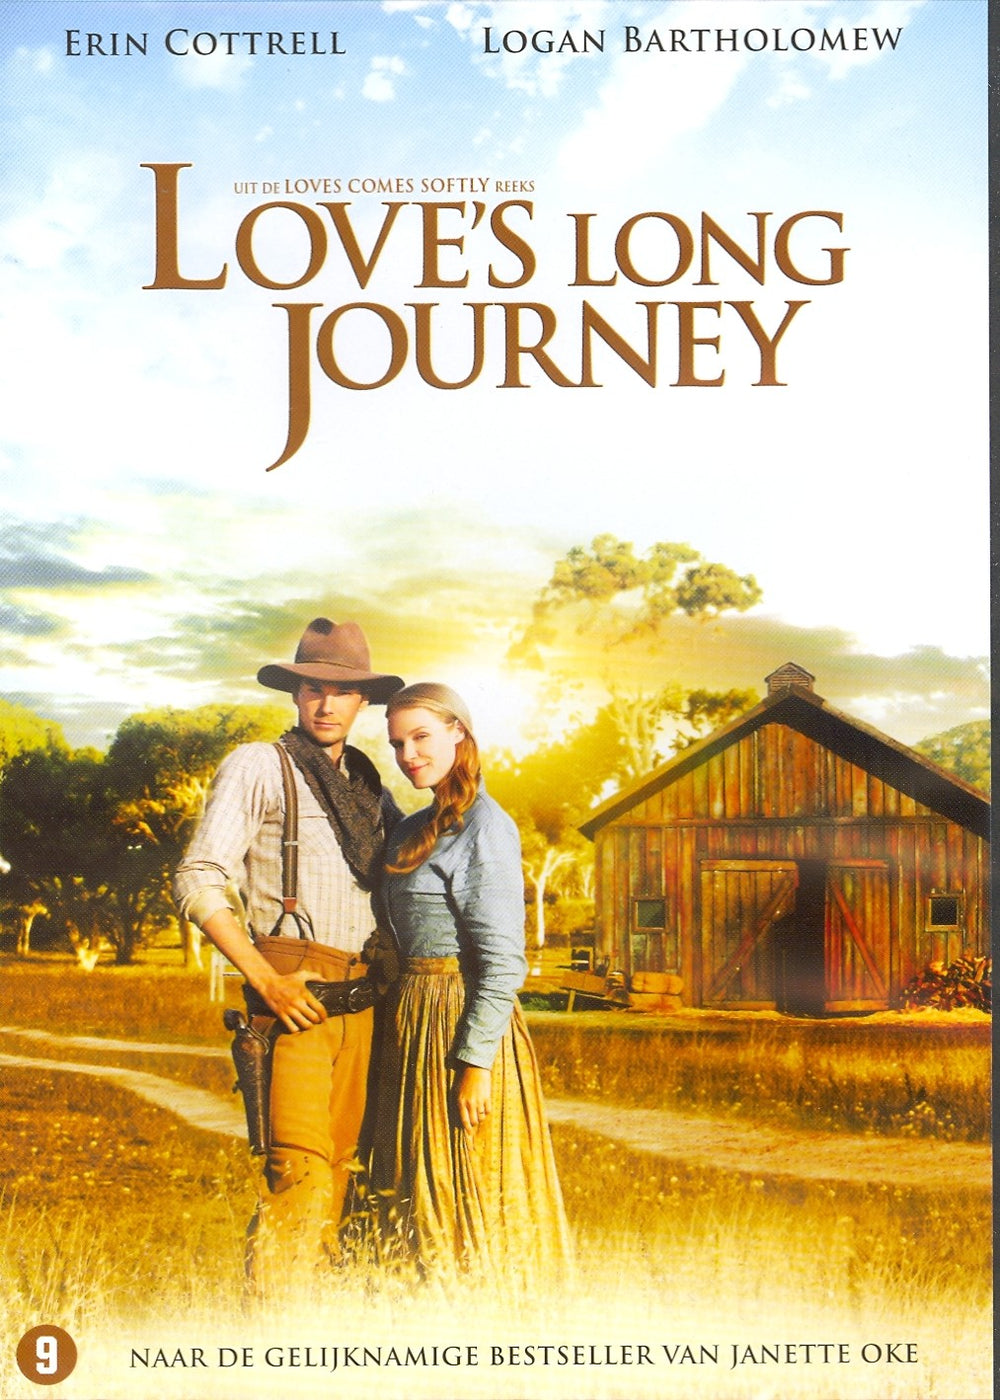 Love's long journey 3 (DVD)